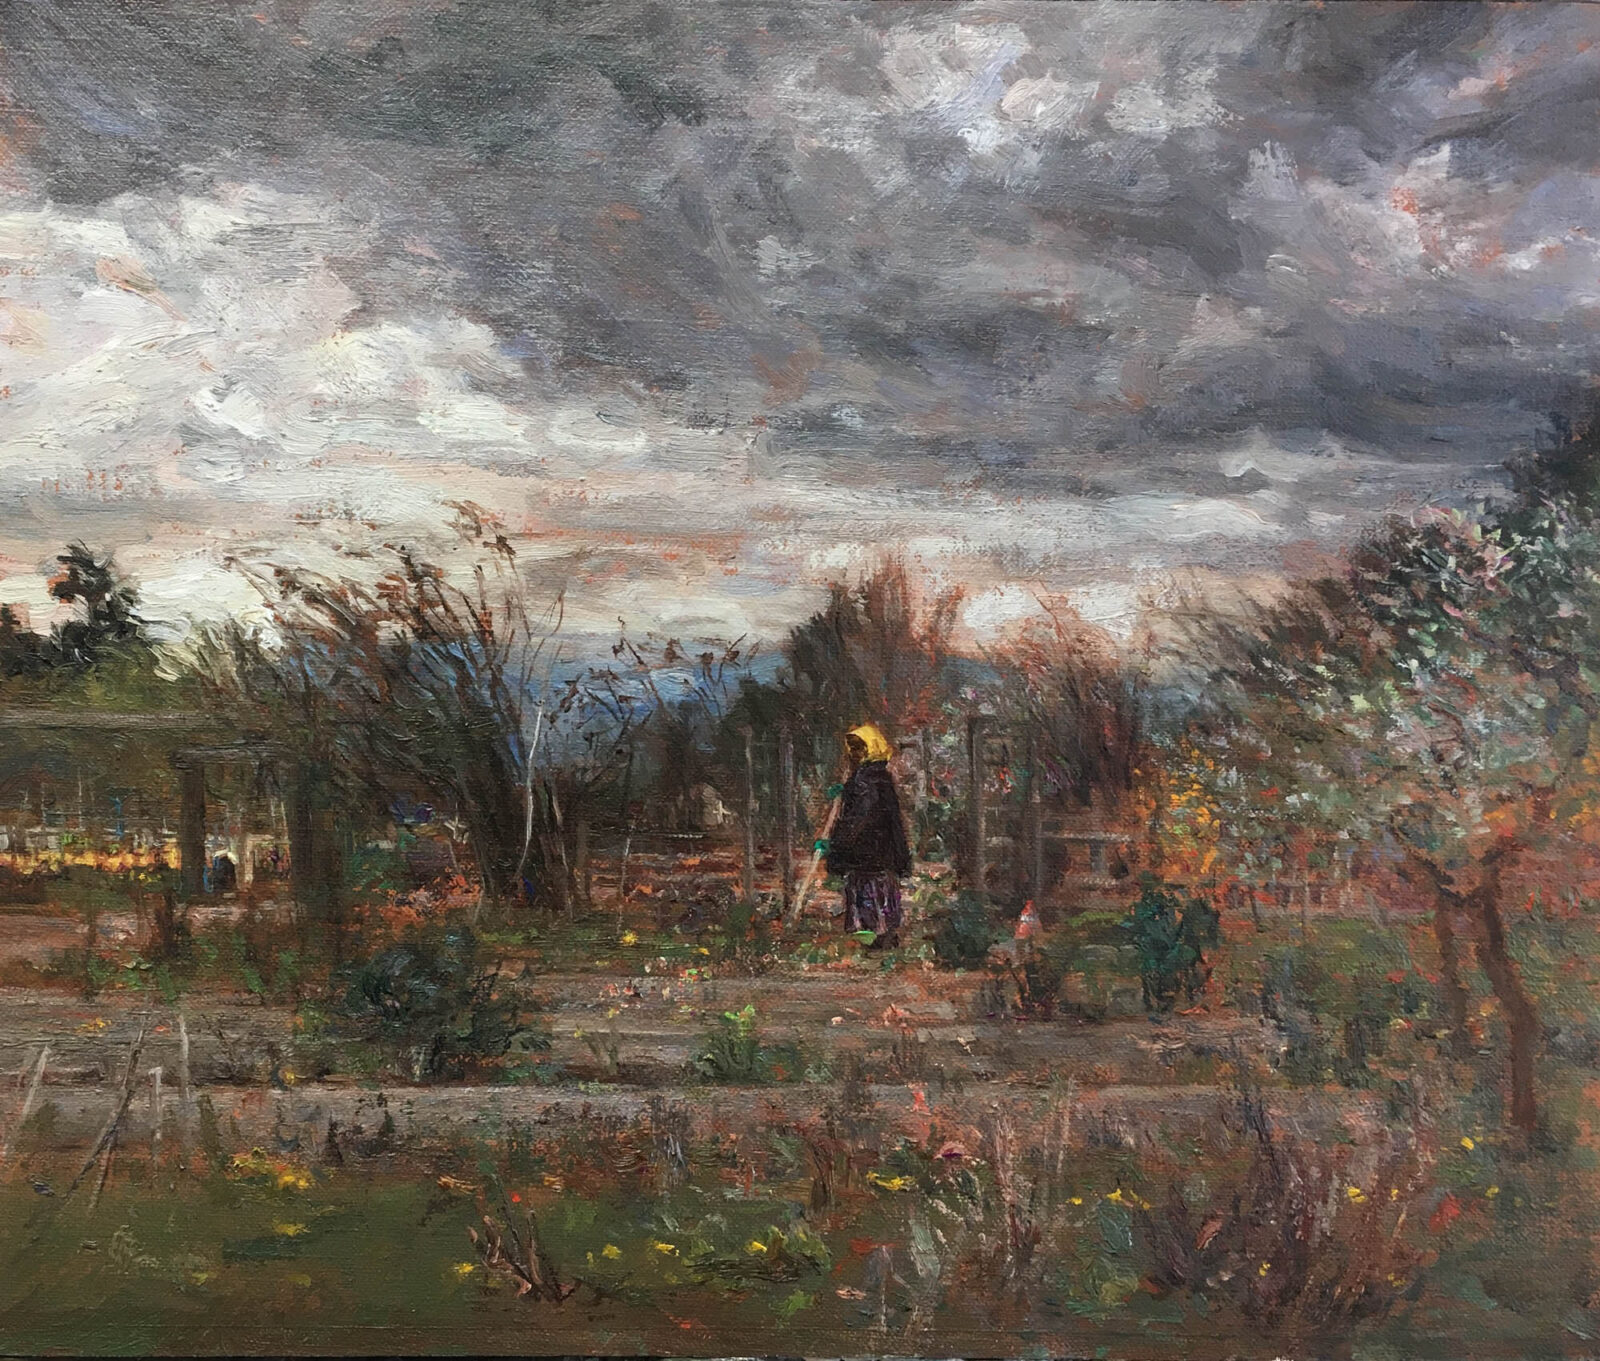 Liza Visagie - Community Garden. Oil on Linen 10 x 12.5 inches